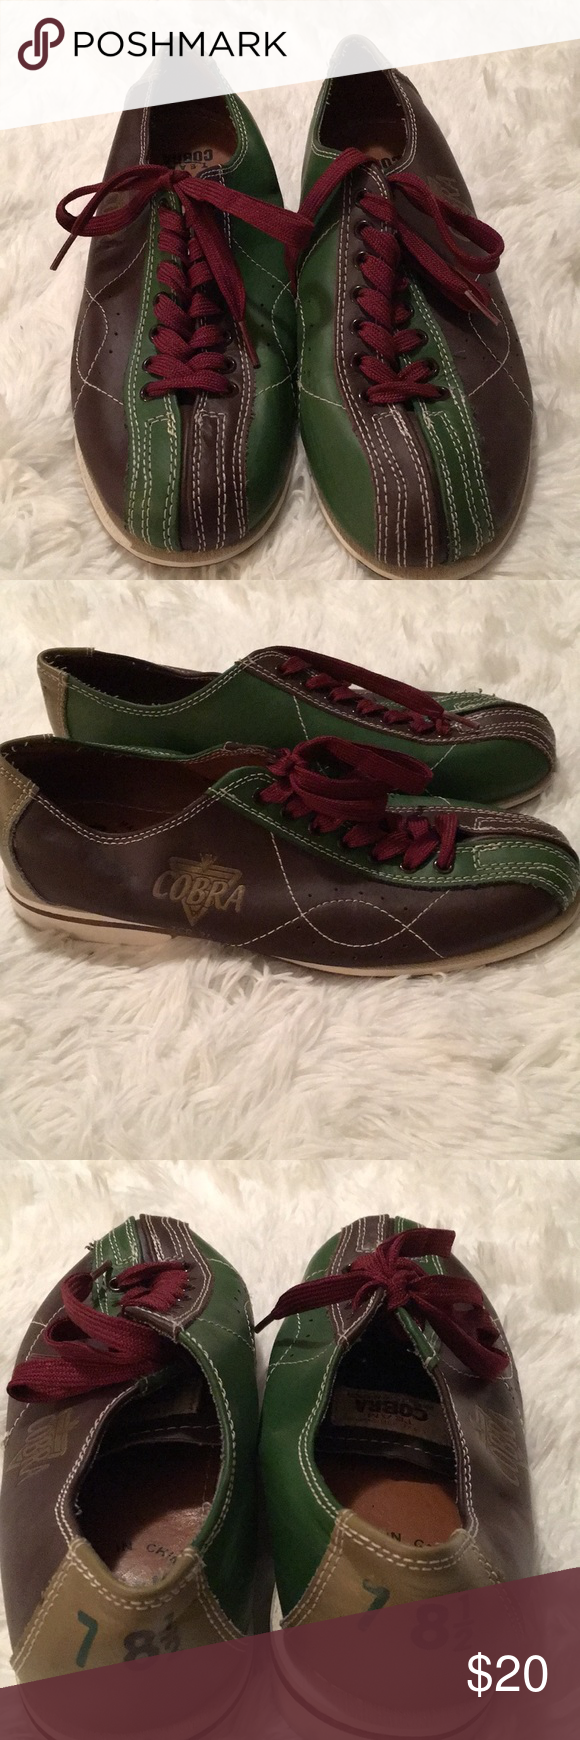 ceb312c453ee Cobra TCR - 3 L Men s Bowling Shoes Pair of 7-8 1 2 Brown Green Men s  Bowling Shoes. Why pay those rental fees when you can own your own! Cobra  Shoes